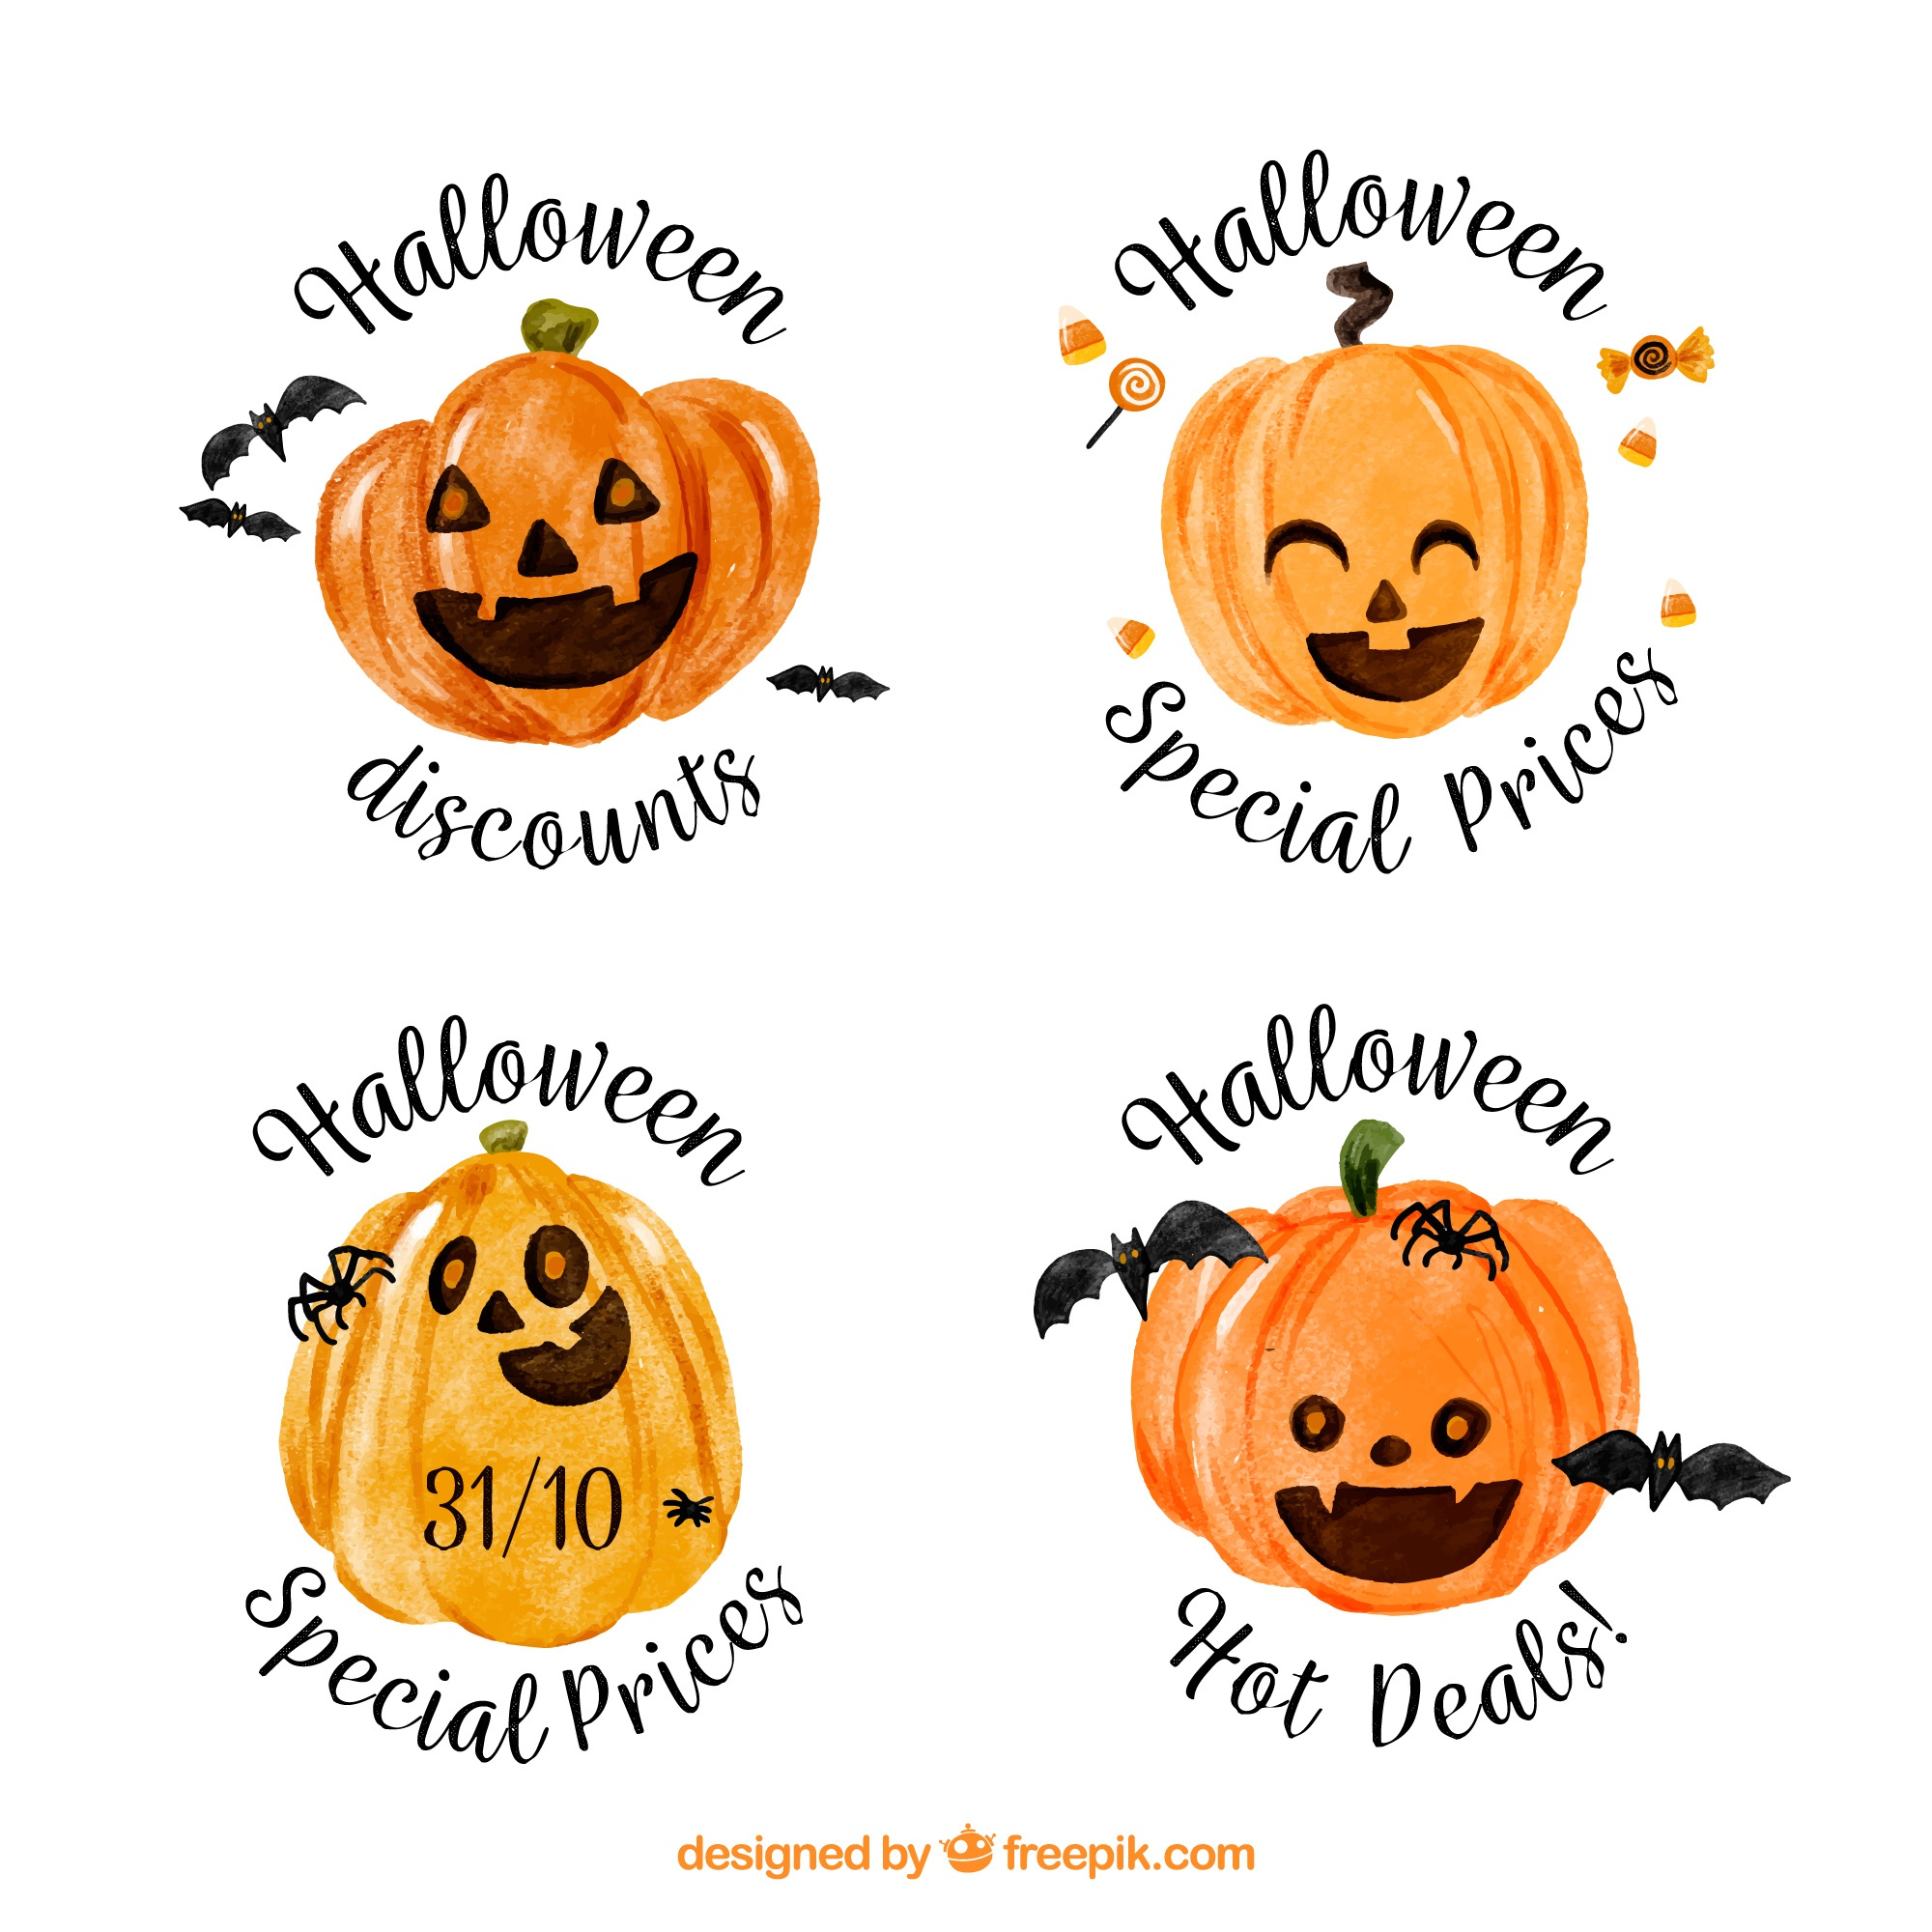 Ensemble d'autocollants de citrouille aquarelle Halloween